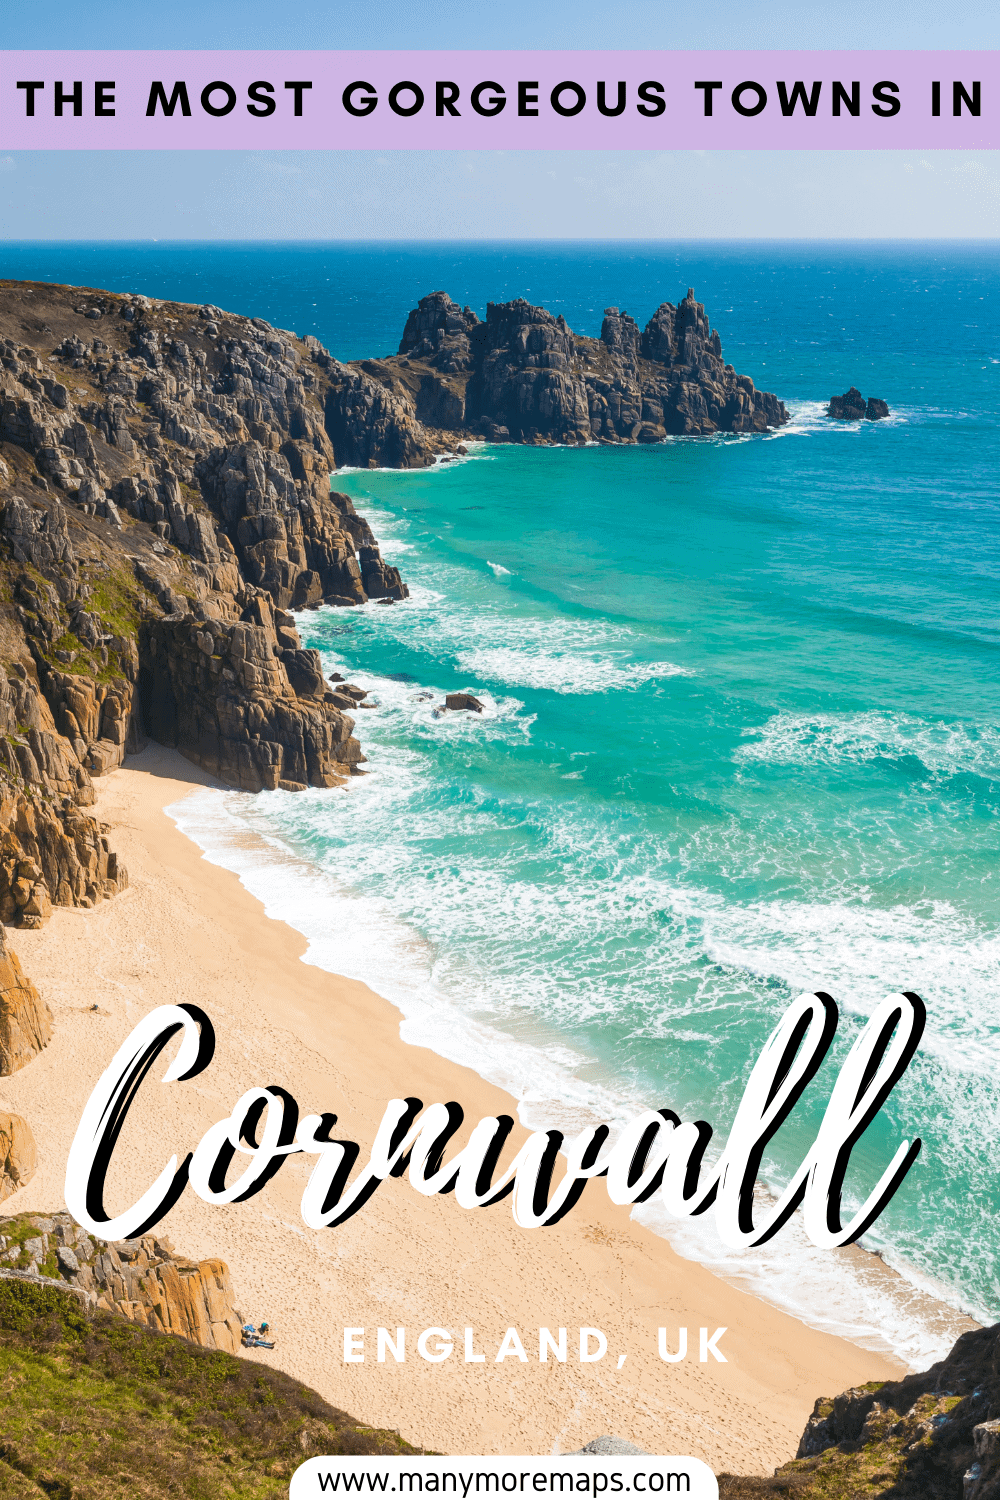 The very best towns and villages to visit in Cornwall! Most beautiful places in Cornwall, Cornwall England travel inspiration and travel tips, things to do in Cornwall, things to see in Cornwall, Cornwall beaches, Looe, Penzance, Newquay, Looe, Port Isaac, Kynance Cove, Sennen, Padstow, Falmouth, St Ives, Cornwall hiking, Cornwall surfing, Cornwall staycations and holidays, England staycation